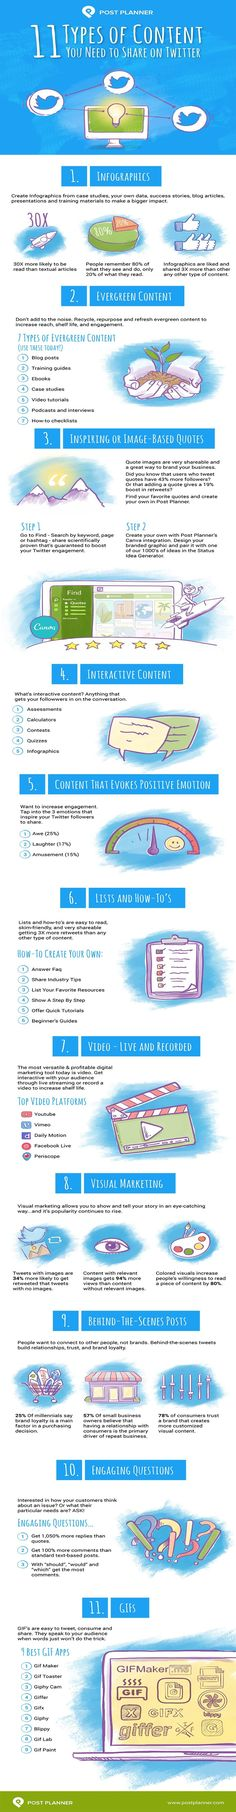 11 Types of Content You Need to Share on Twitter - #Infographic